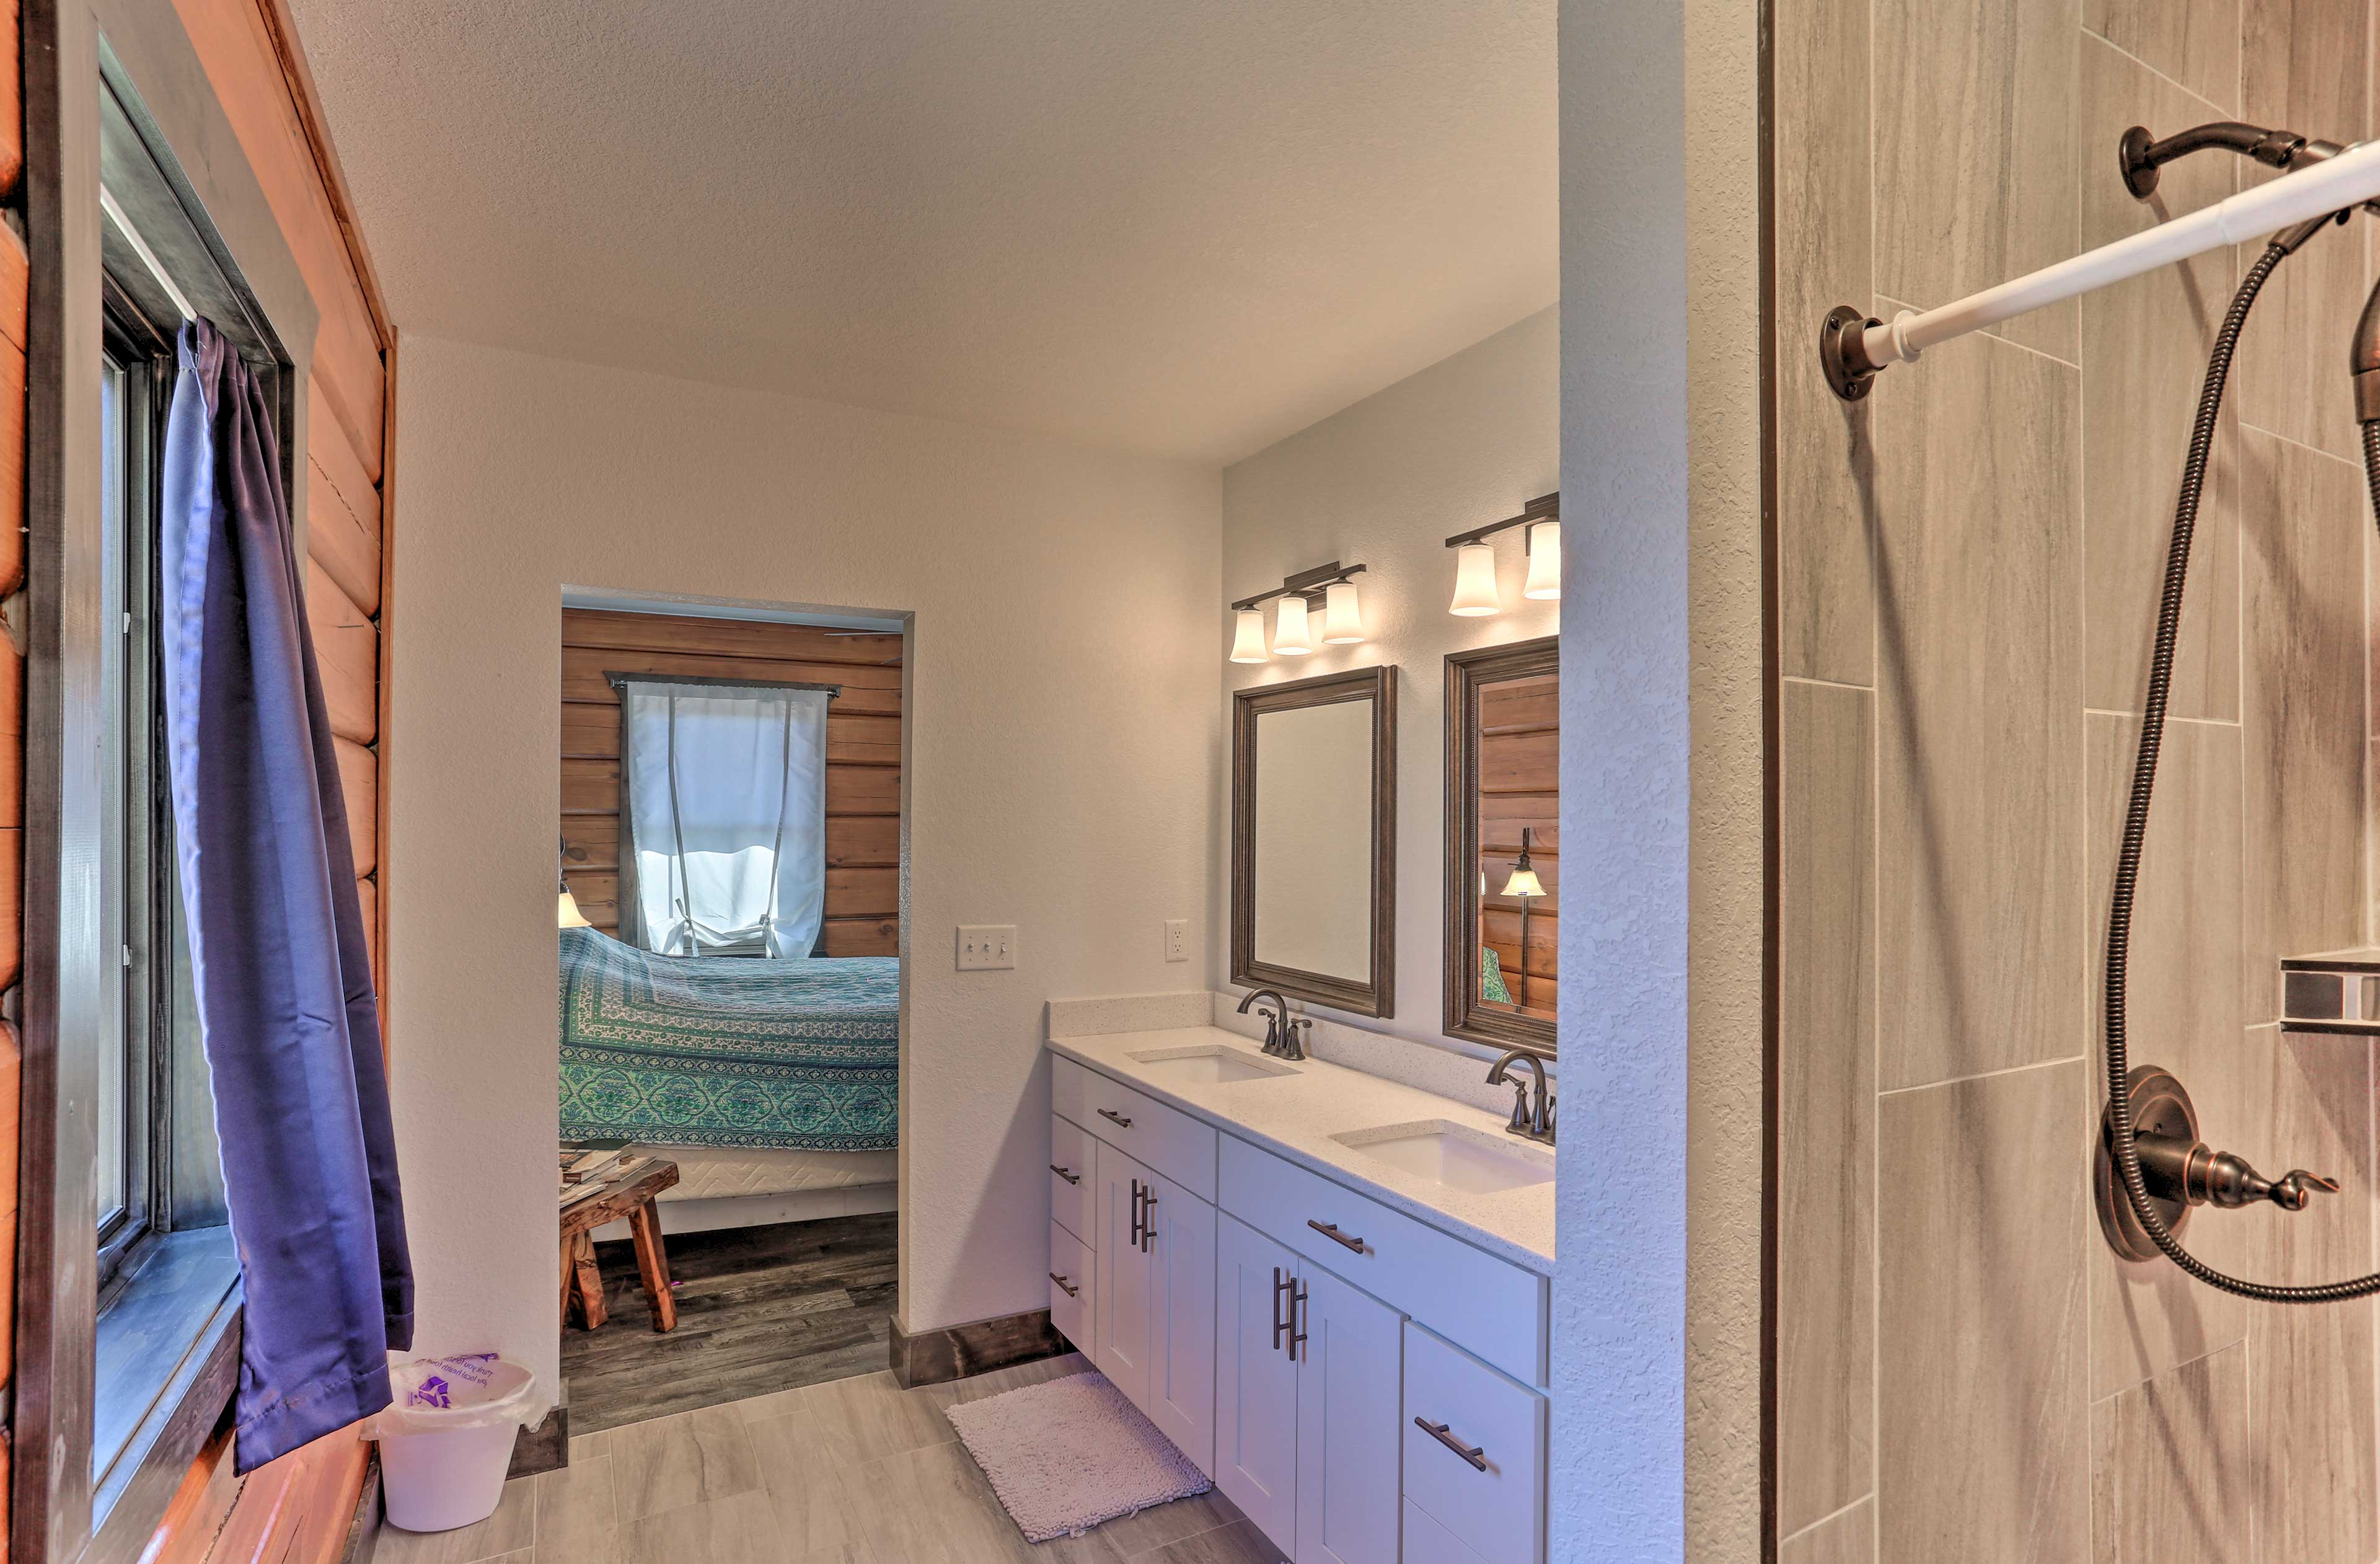 This full bathroom boasts double sinks and a shower.